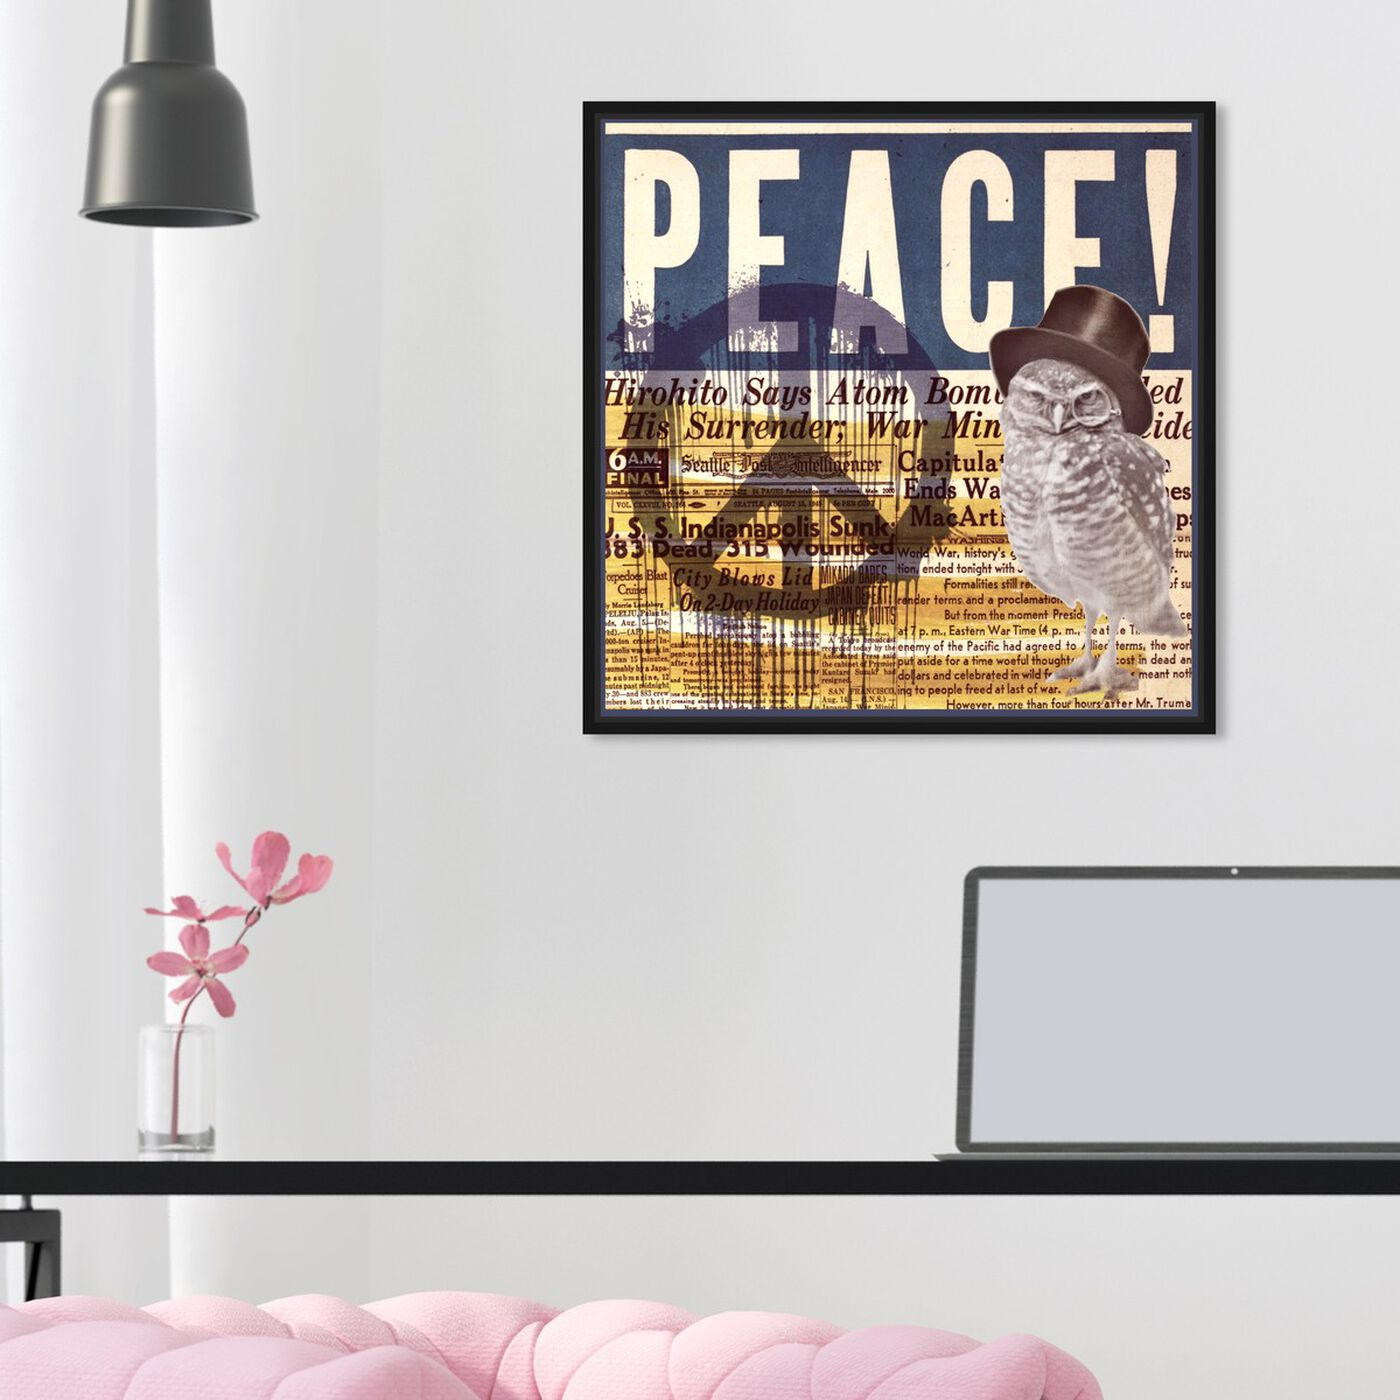 Hanging view of Peace! featuring advertising and posters art.